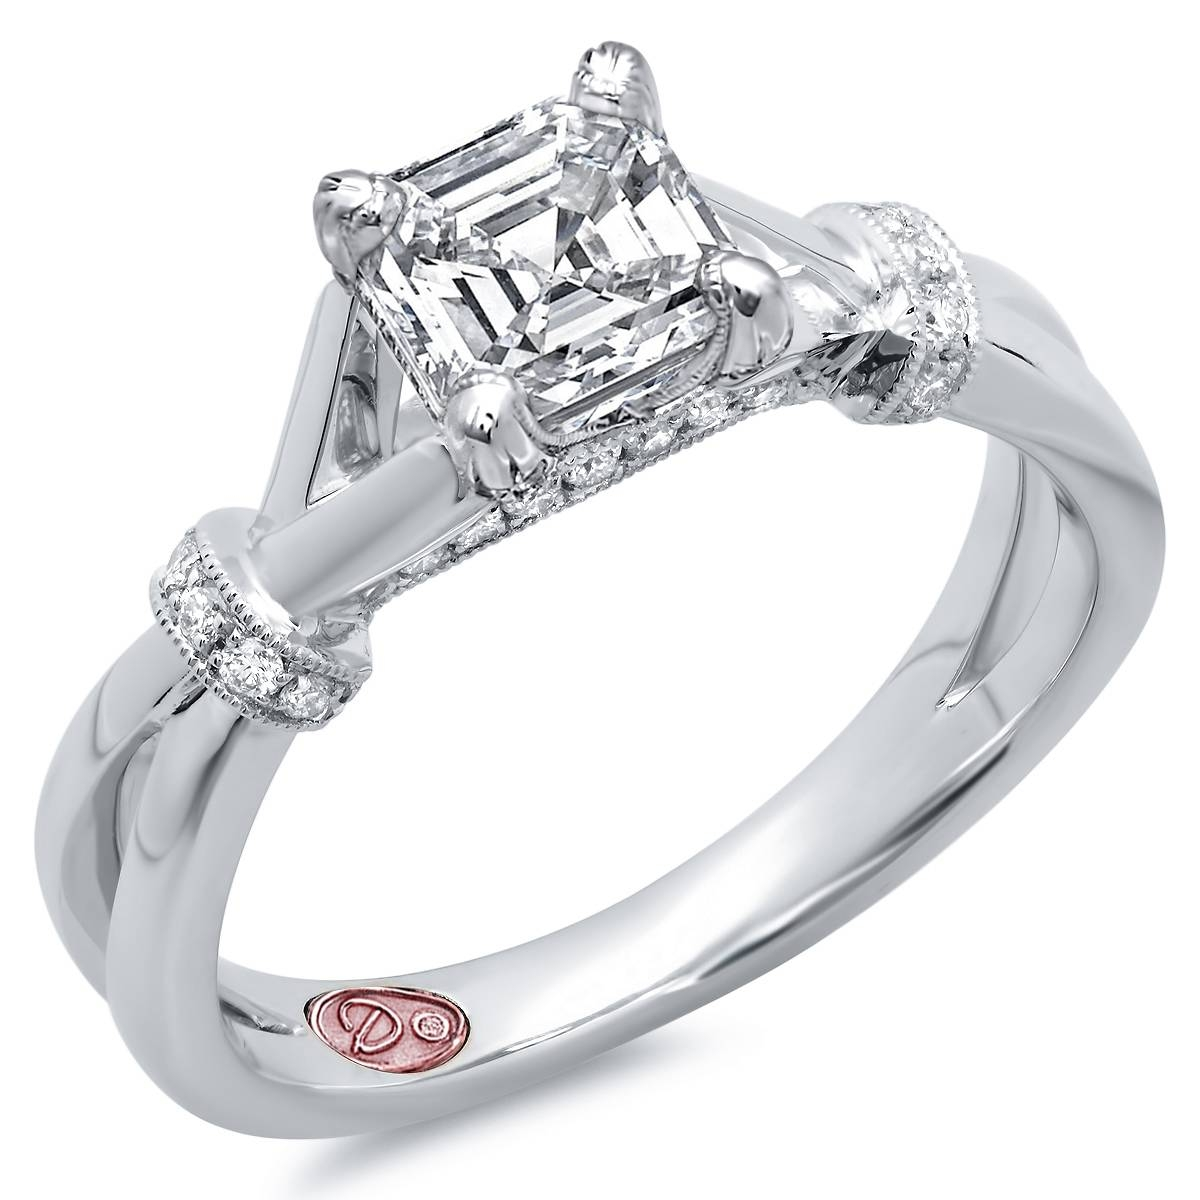 Womens Designer Engagement Rings | Demarco Bridal Jewelry Official Throughout Womans Engagement Rings (View 12 of 15)